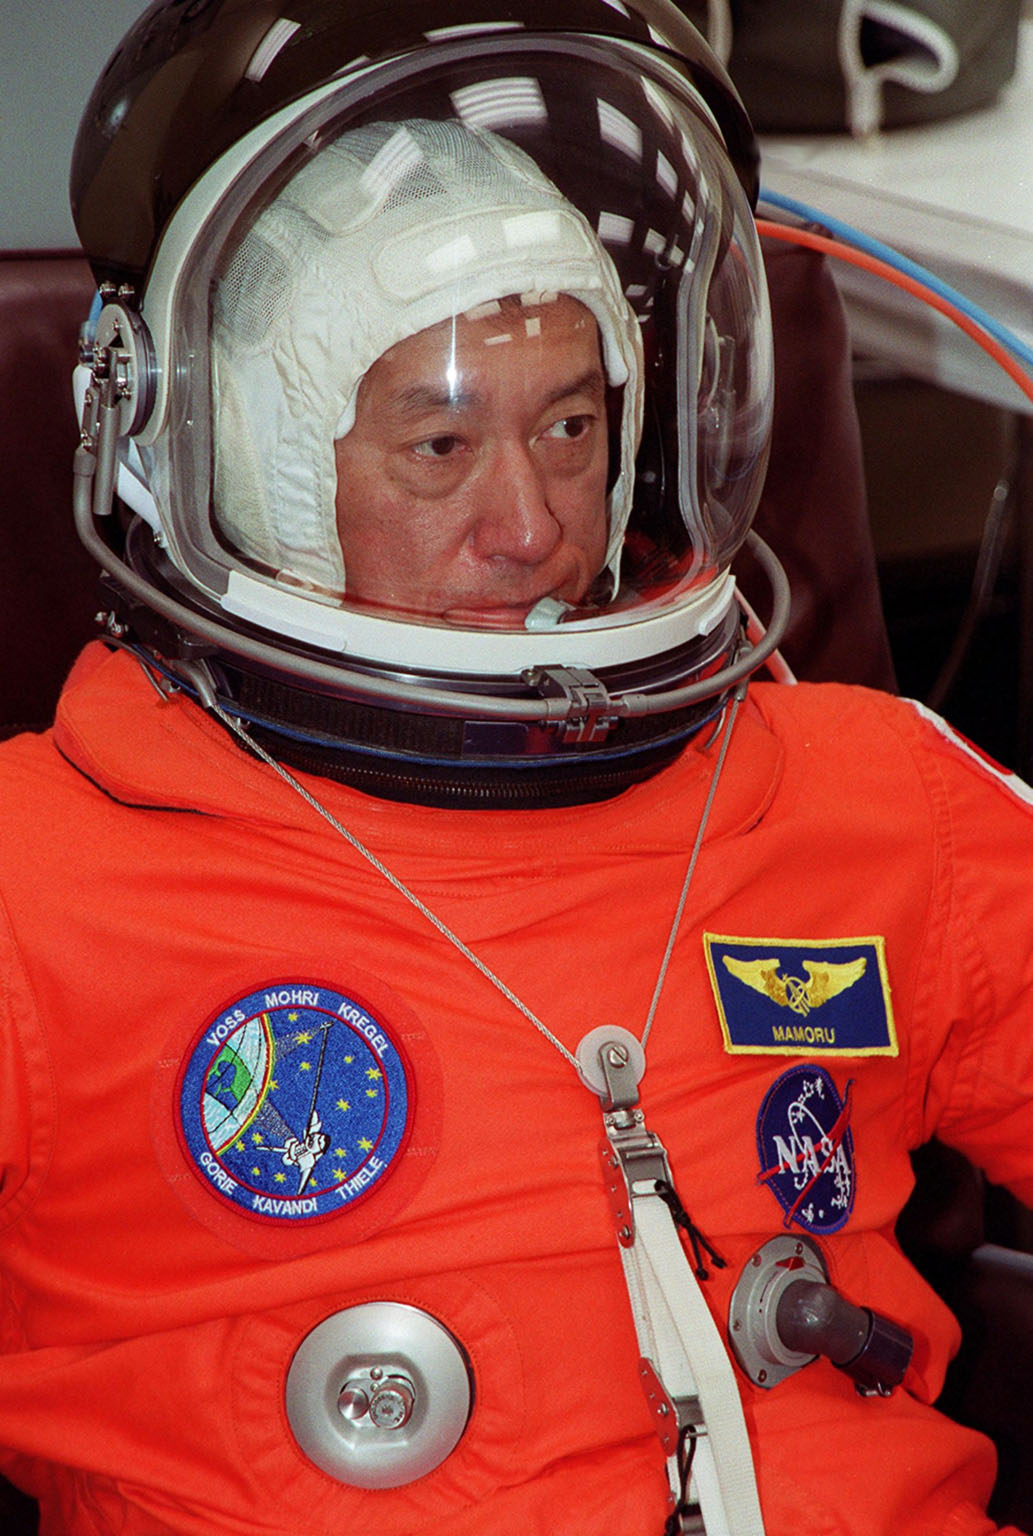 STS-99 Mission Specialist Mamoru Mohri (Ph.D.), who is with the National Space Development Agency (NASDA) of Japan, suits up in the Operations and Checkout Building, as part of a flight crew equipment fit check, prior to his trip to Launch Pad 39A. The crew is taking part in Terminal Countdown Demonstration Test (TCDT) activities that provide the crew with simulated countdown exercises, emergency egress training, and opportunities to inspect the mission payloads in the orbiter's payload bay. STS-99 is the Shuttle Radar Topography Mission, which will chart a new course, using two antennae and a 200-foot-long section of space station-derived mast protruding from the payload bay to produce unrivaled 3-D images of the Earth's surface. The result of the Shuttle Radar Topography Mission could be close to 1 trillion measurements of the Earth's topography. Besides contributing to the production of better maps, these measurements could lead to improved water drainage modeling, more realistic flight simulators, better locations for cell phone towers, and enhanced navigation safety. Launch of Endeavour on the 11-day mission is scheduled for Jan. 31 at 12:47 p.m. EST